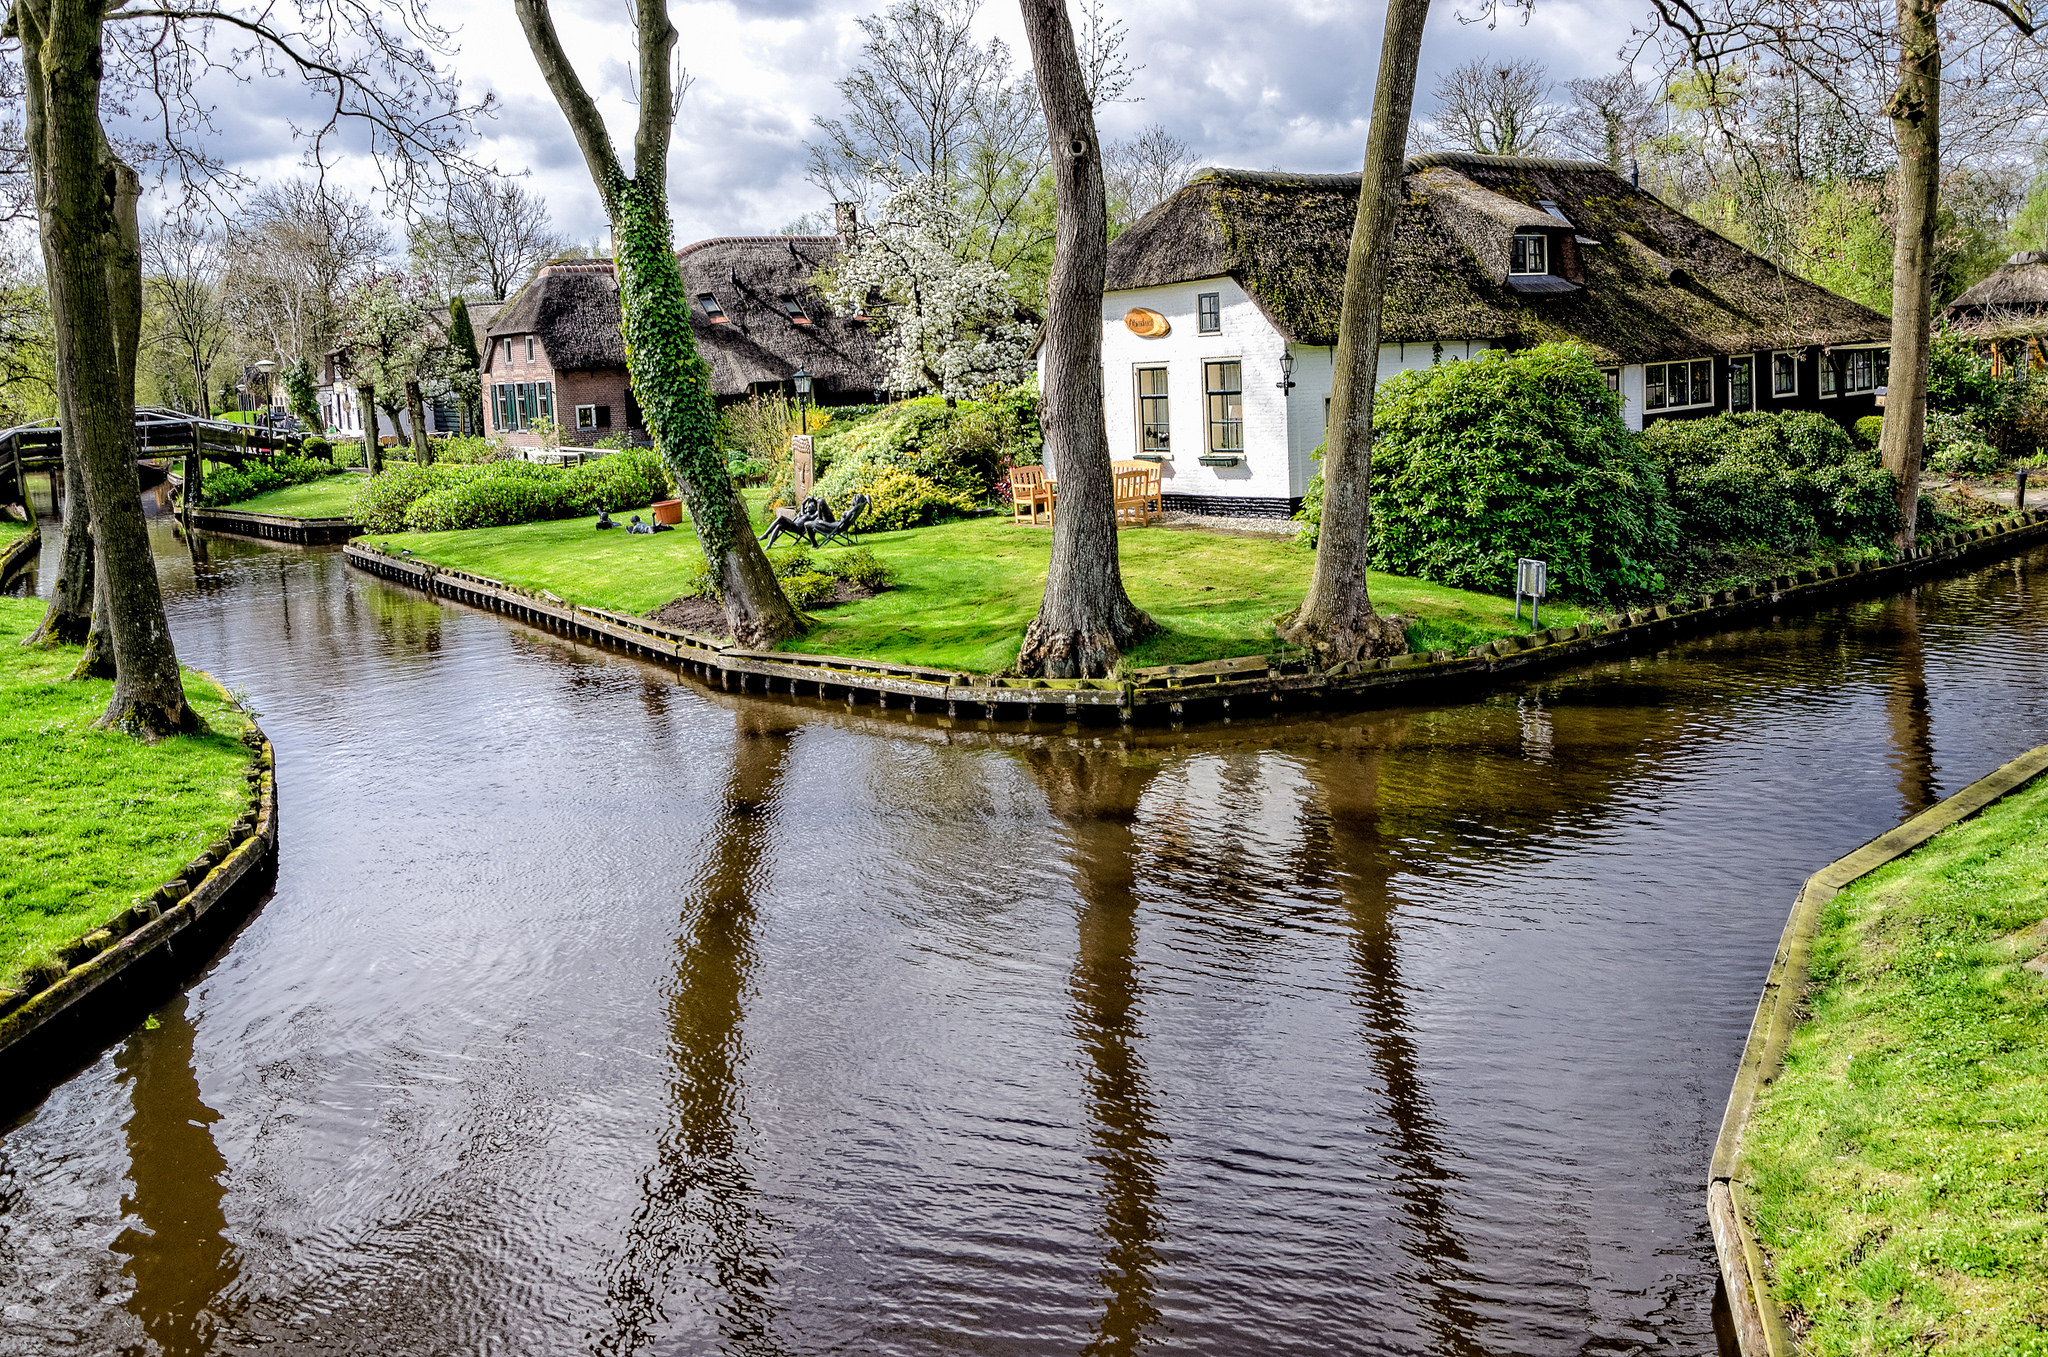 The magic of Giethoorn